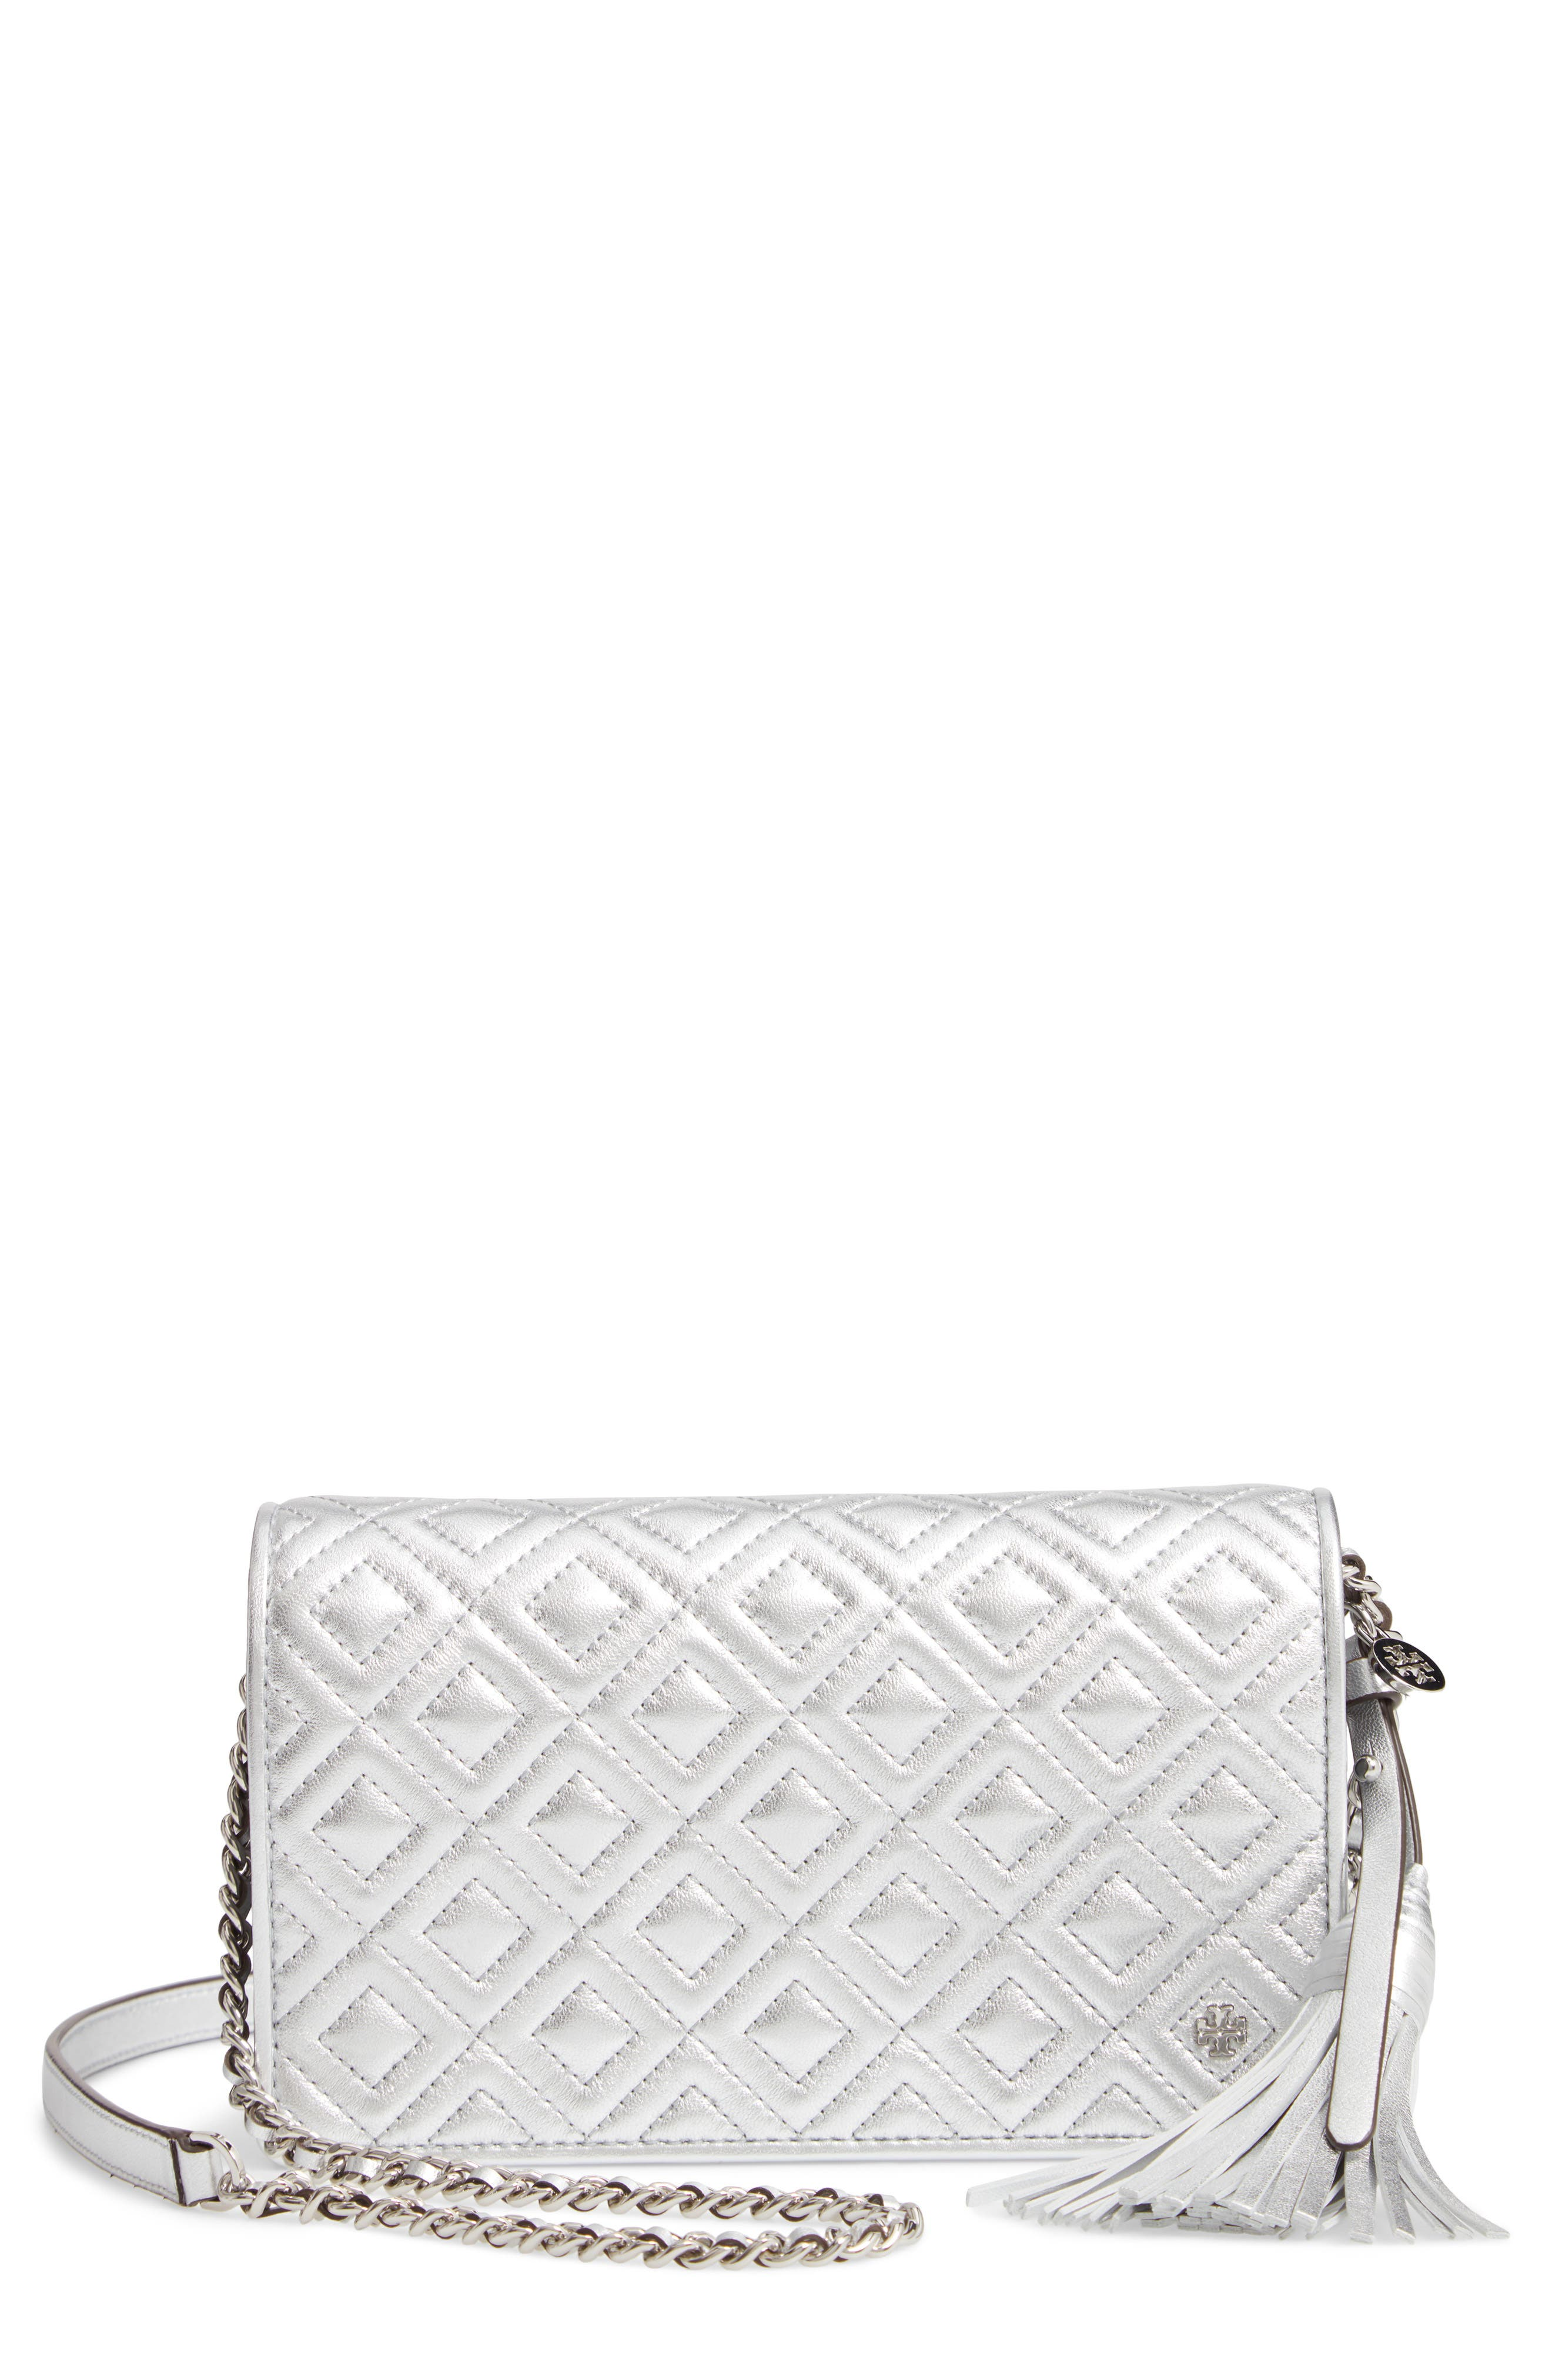 TORY BURCH, Fleming Quilted Metallic Leather Continental Wallet, Main thumbnail 1, color, 040